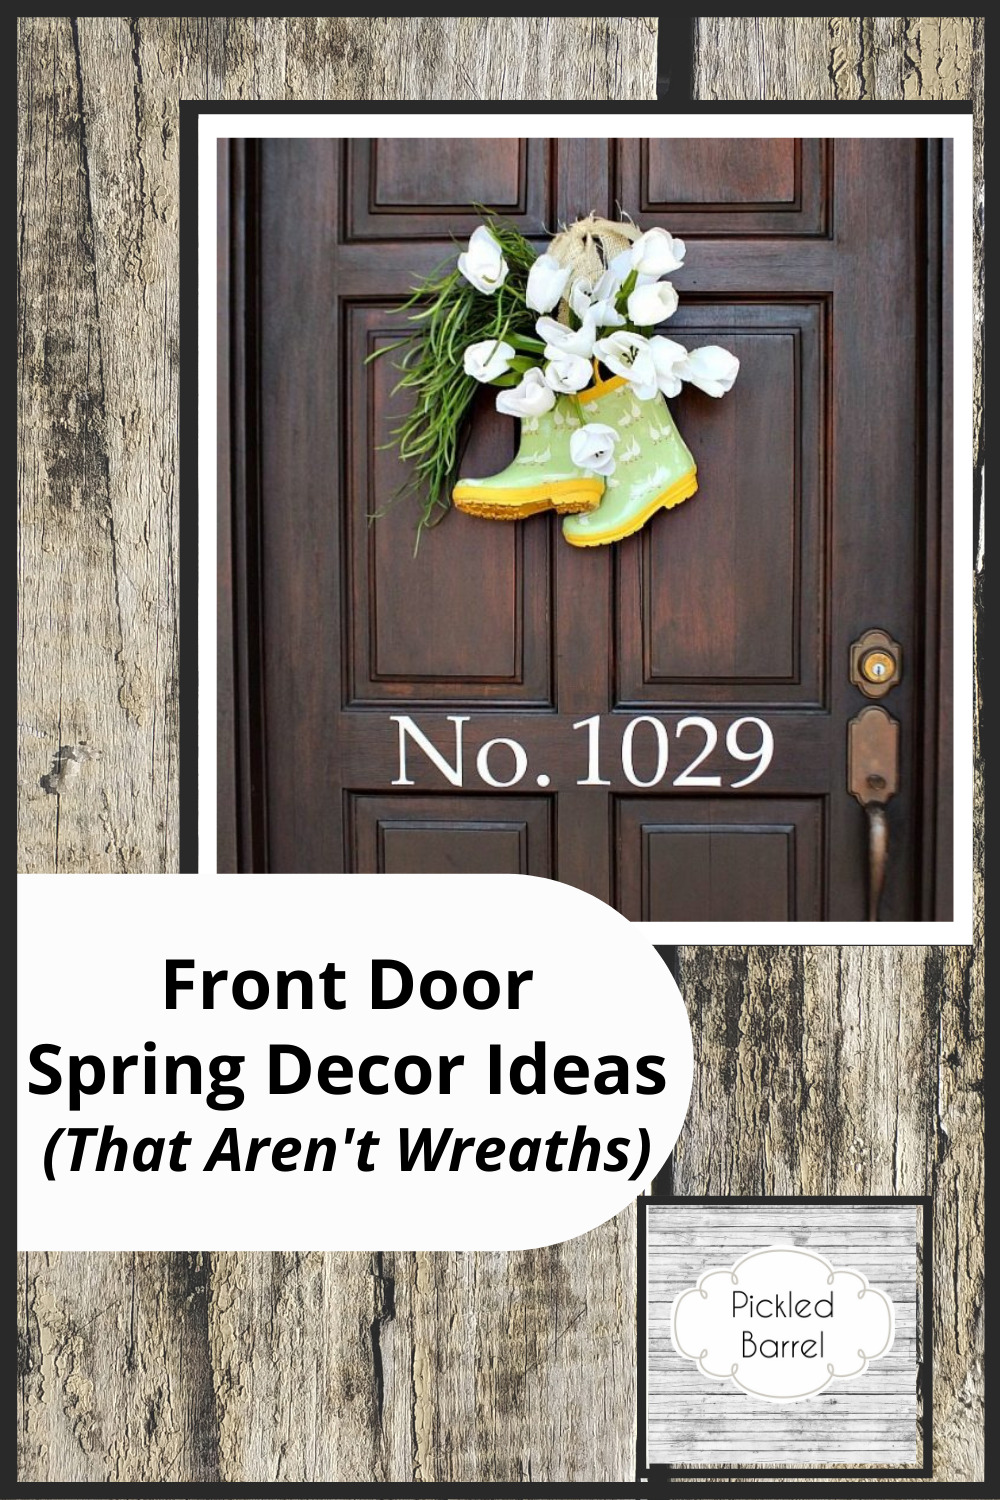 Pickledbarrel.com is filled with creative and cozy home decor ideas. Find the inspiration you need to get your home just right--inside and out! Check out these amazing spring decor ideas for your front door (without using wreaths).